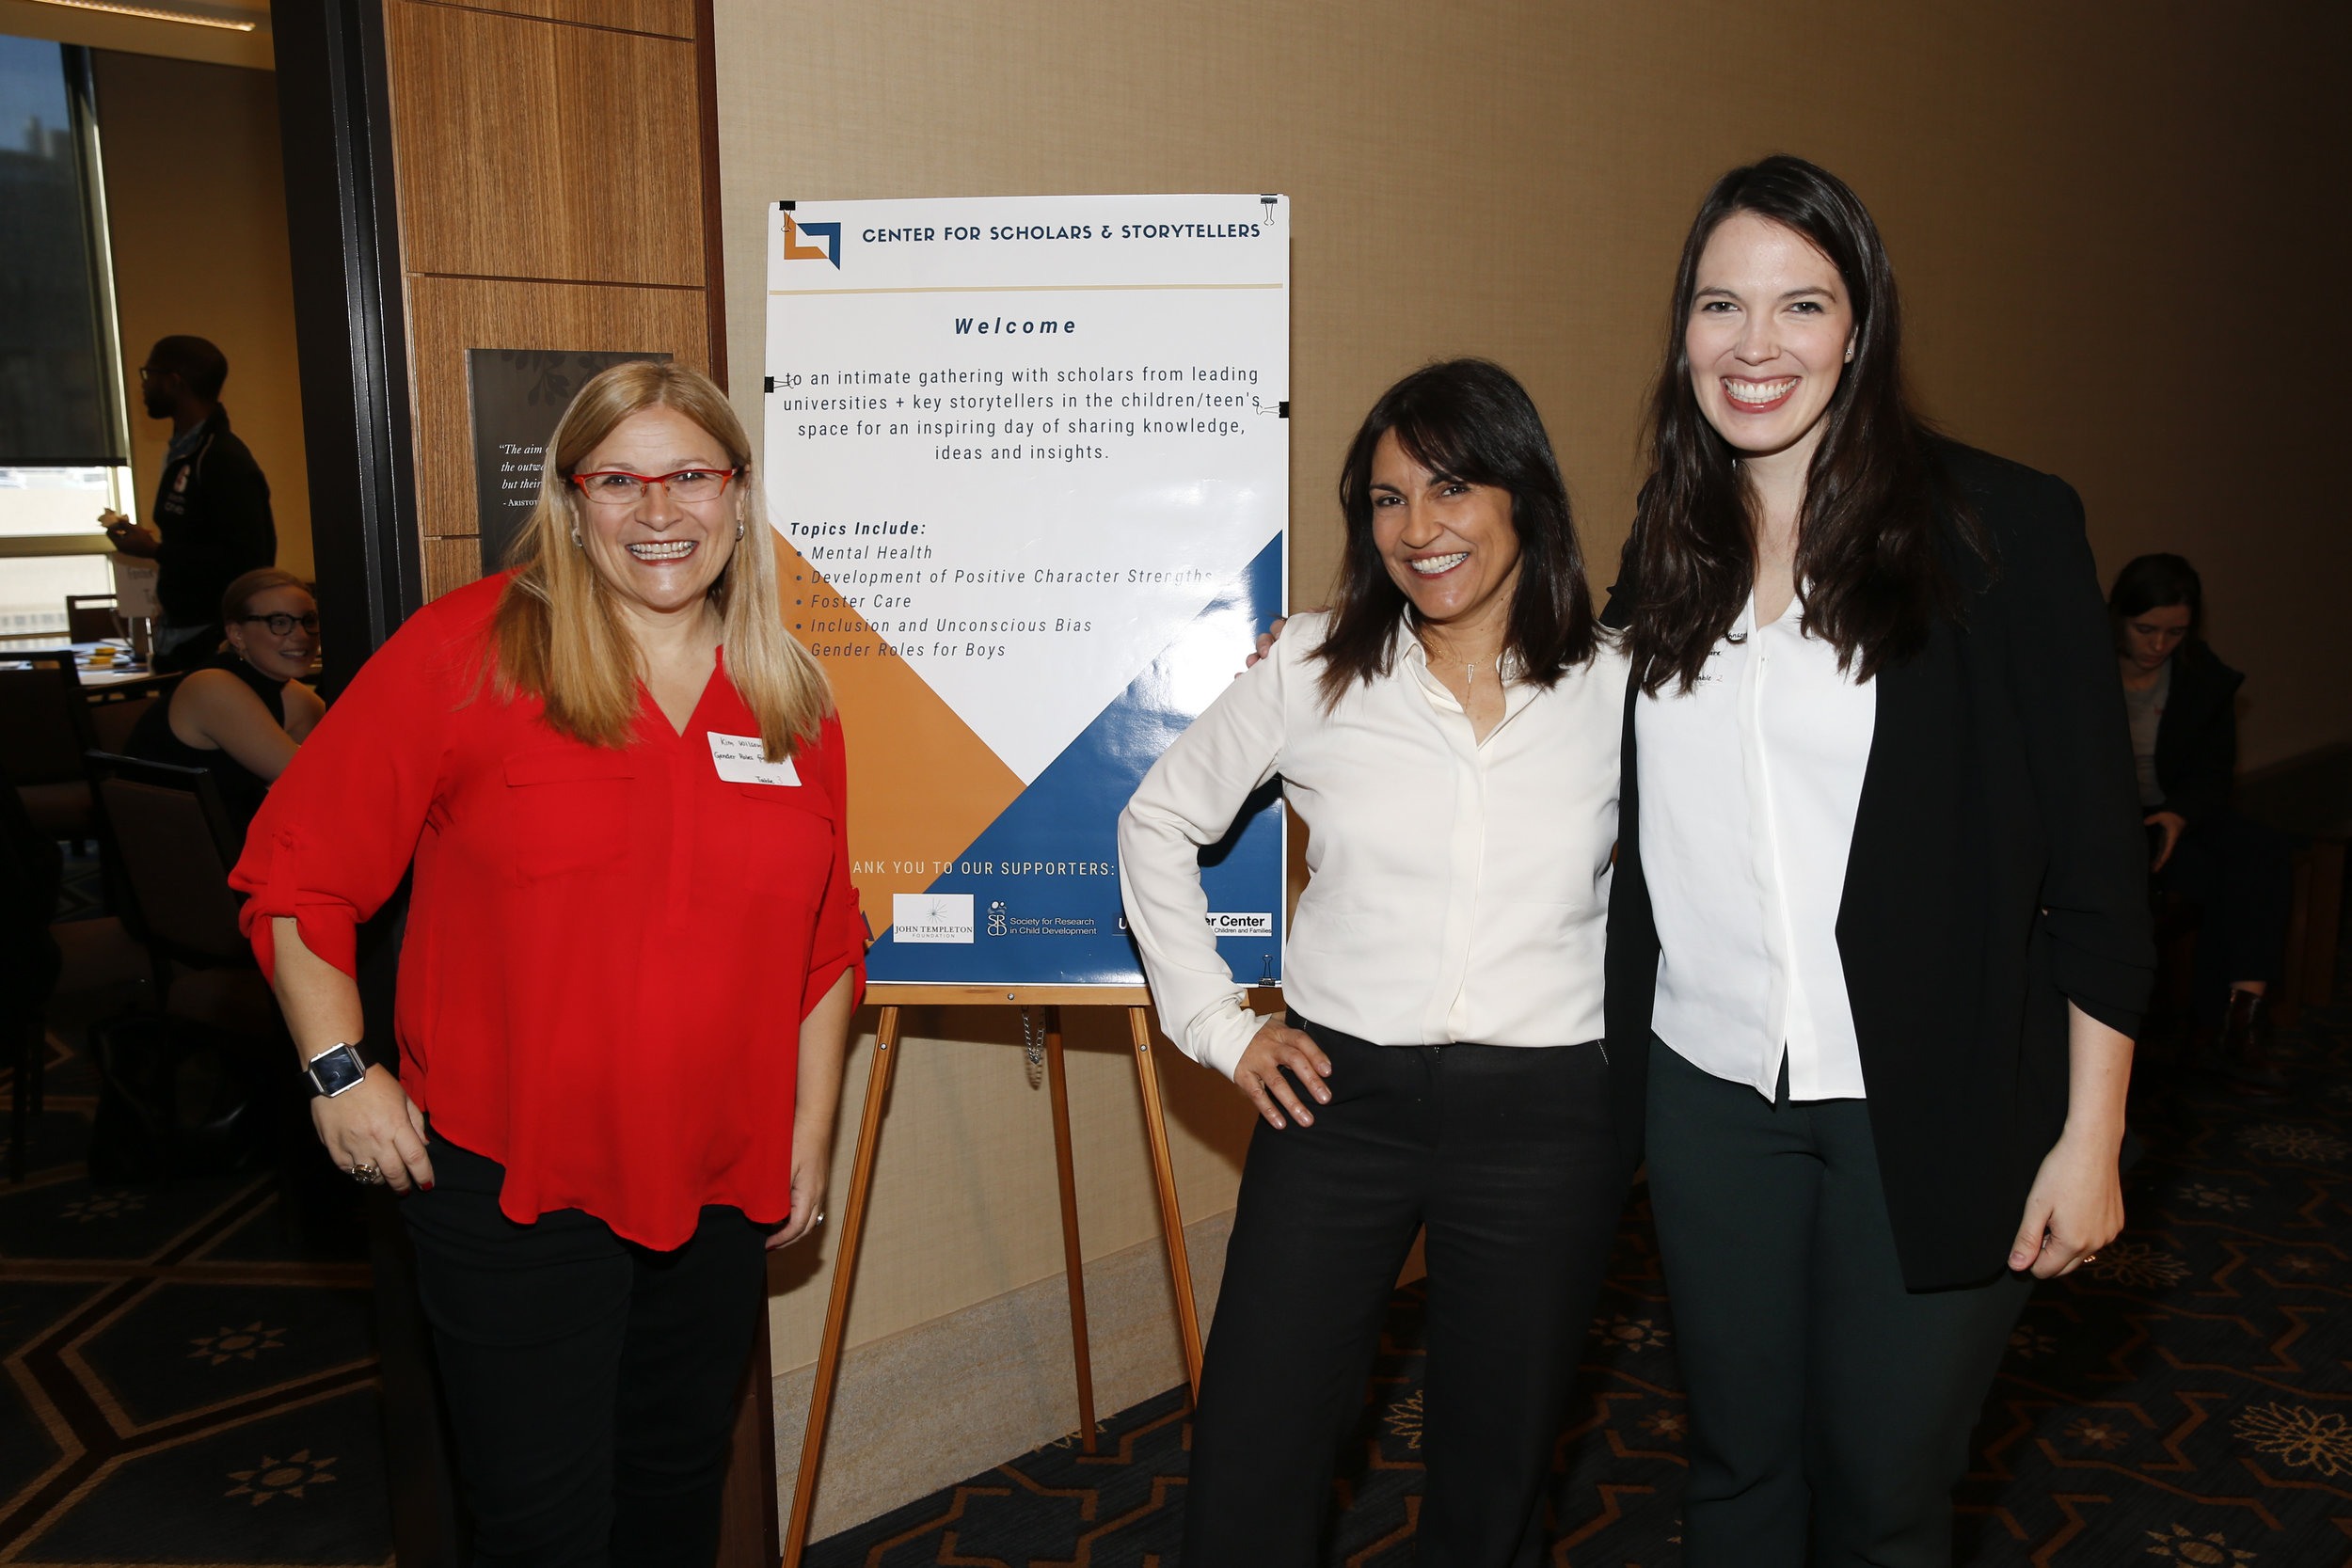 Co-Director Kim Wilson (left), Founder and Executive Director Yalda T. Uhls (center), and Co-Director Colleen Russo Johnson (right) welcome and introduce event topics.